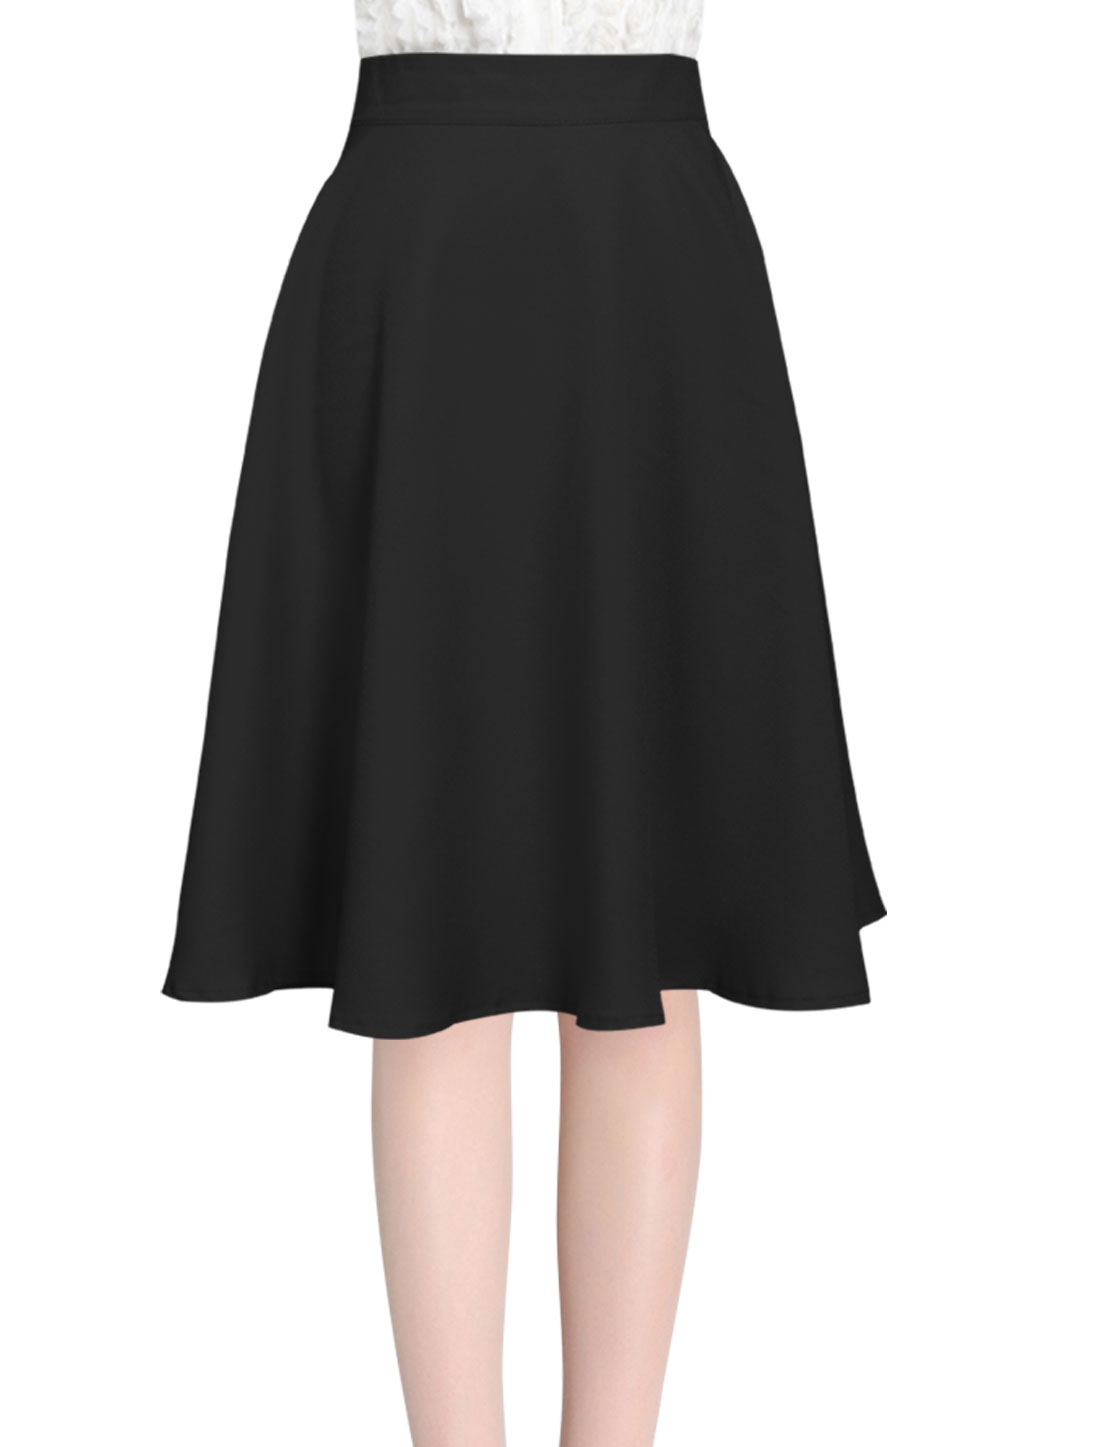 Women Elegant Knee Length Round Hem Fashion Full Skirt Black M